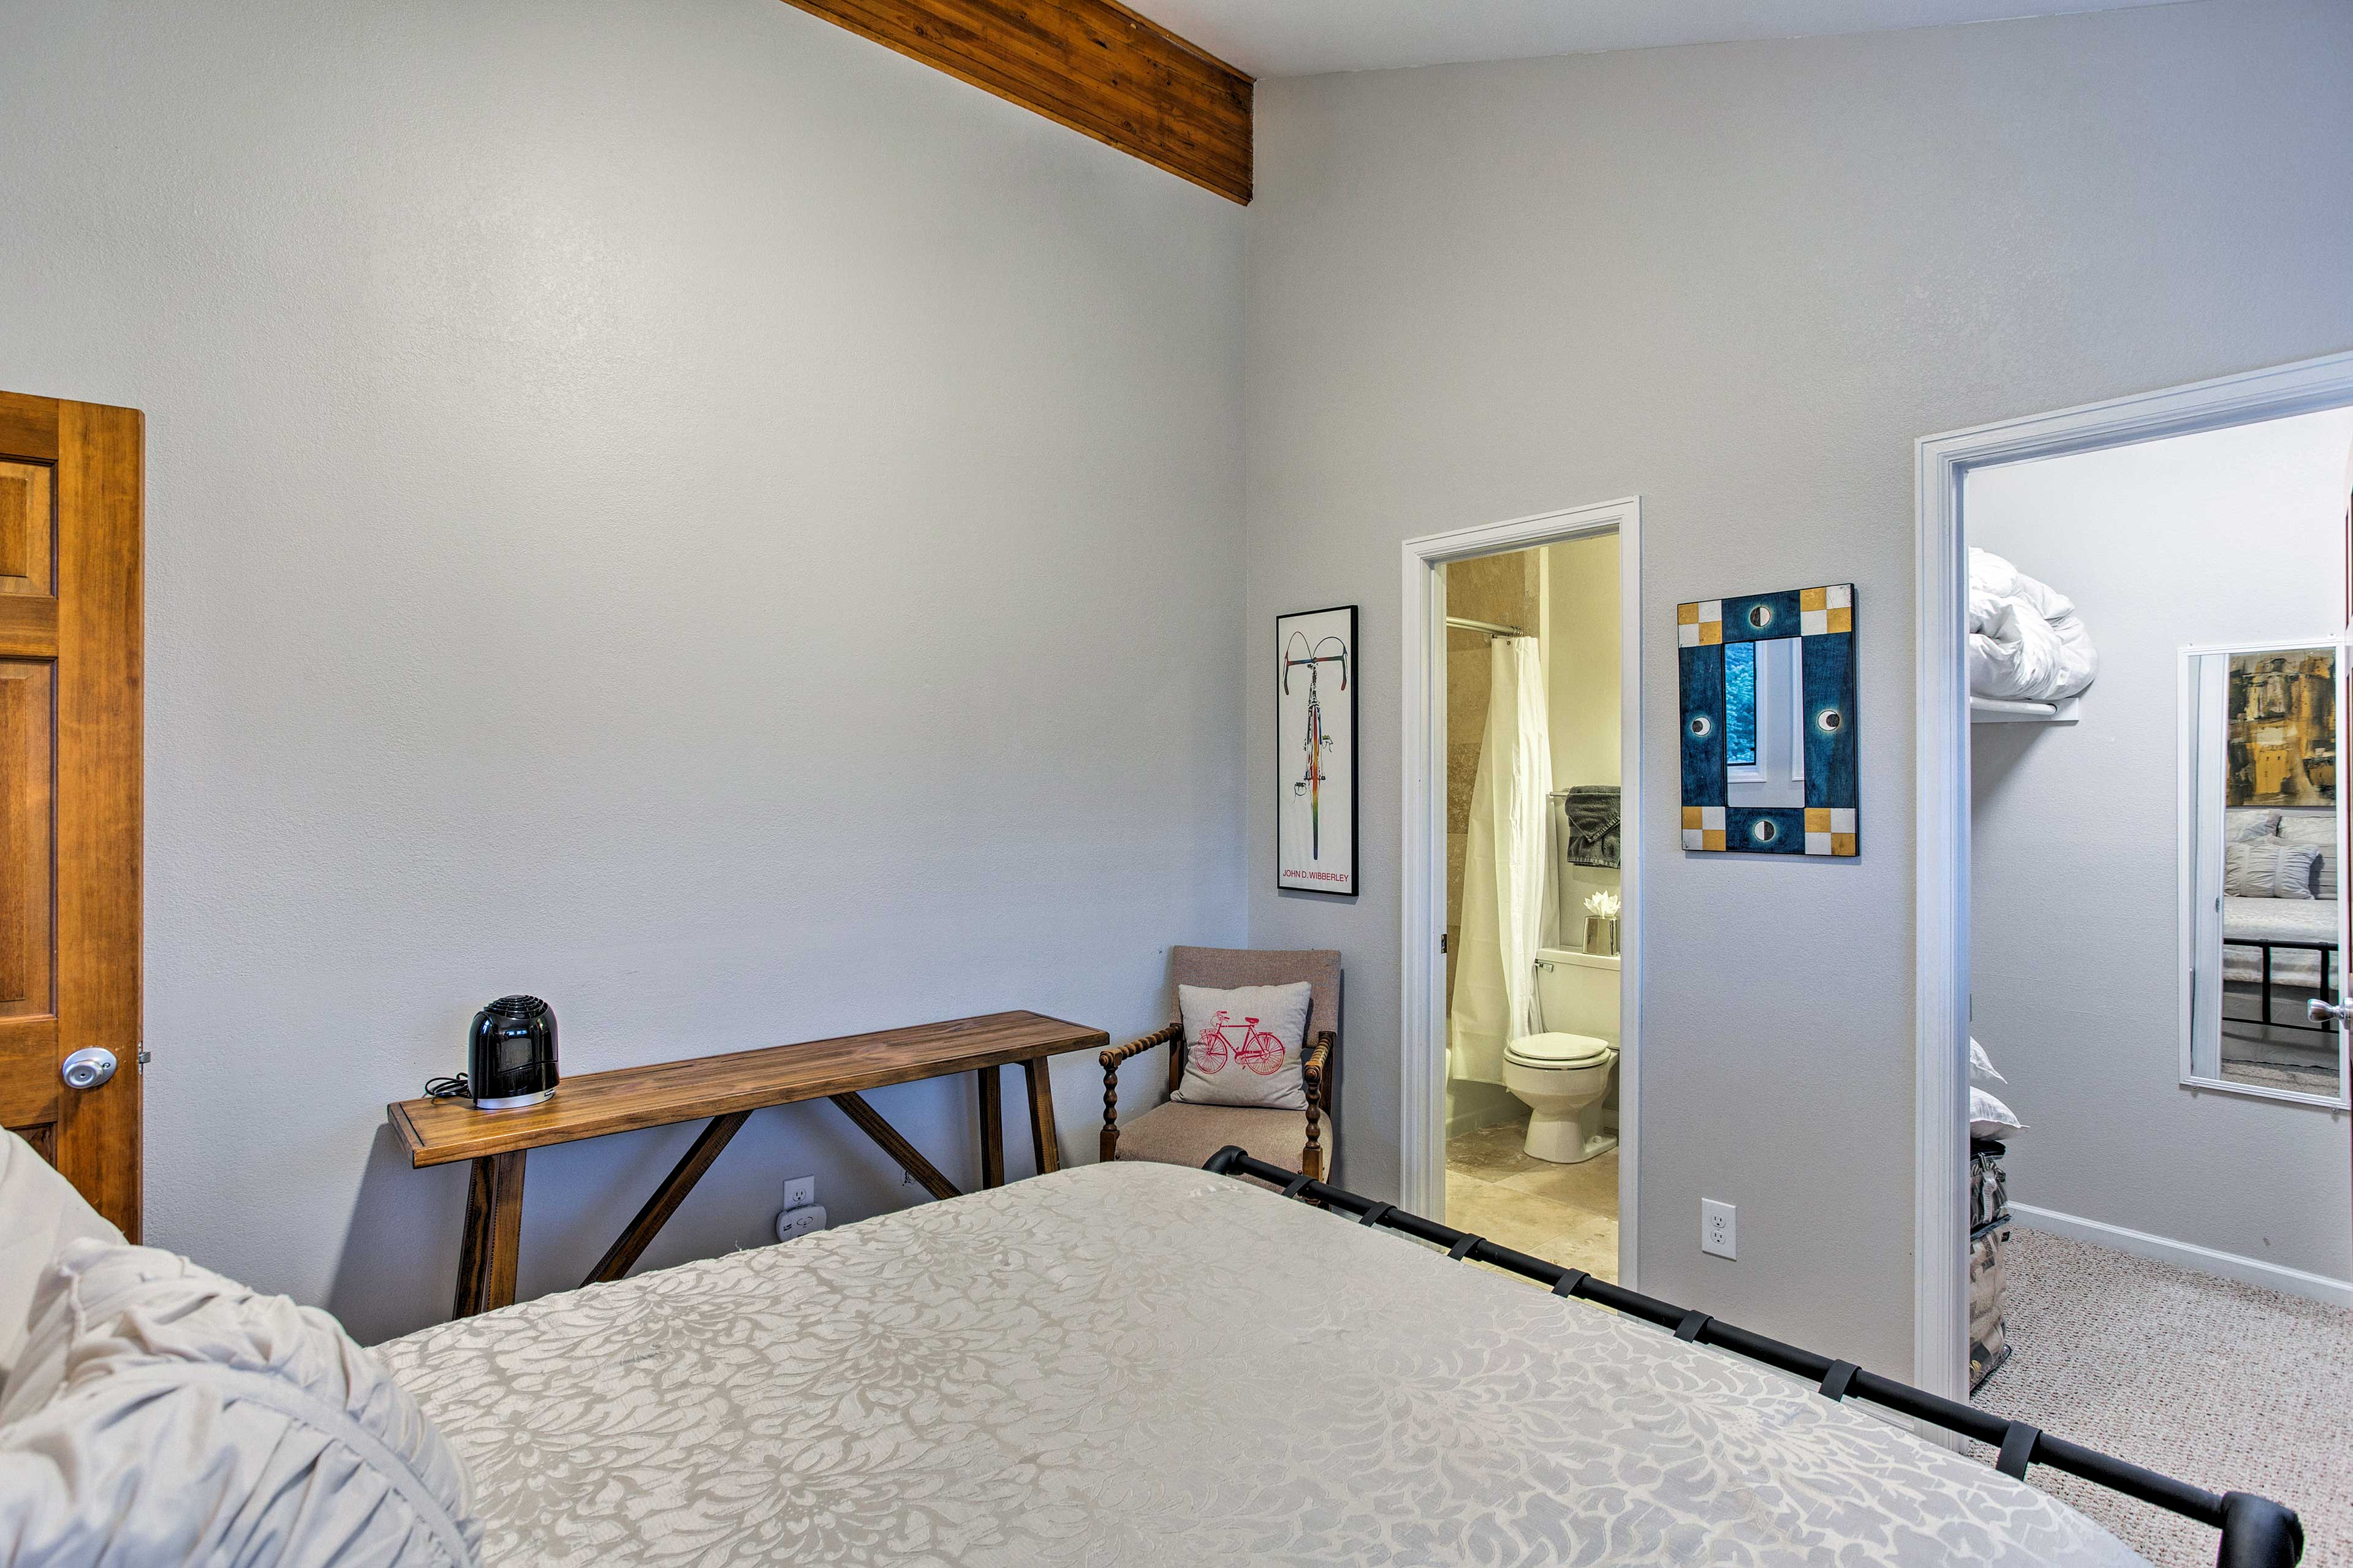 Both bedrooms on the top floor have vaulted ceilings.